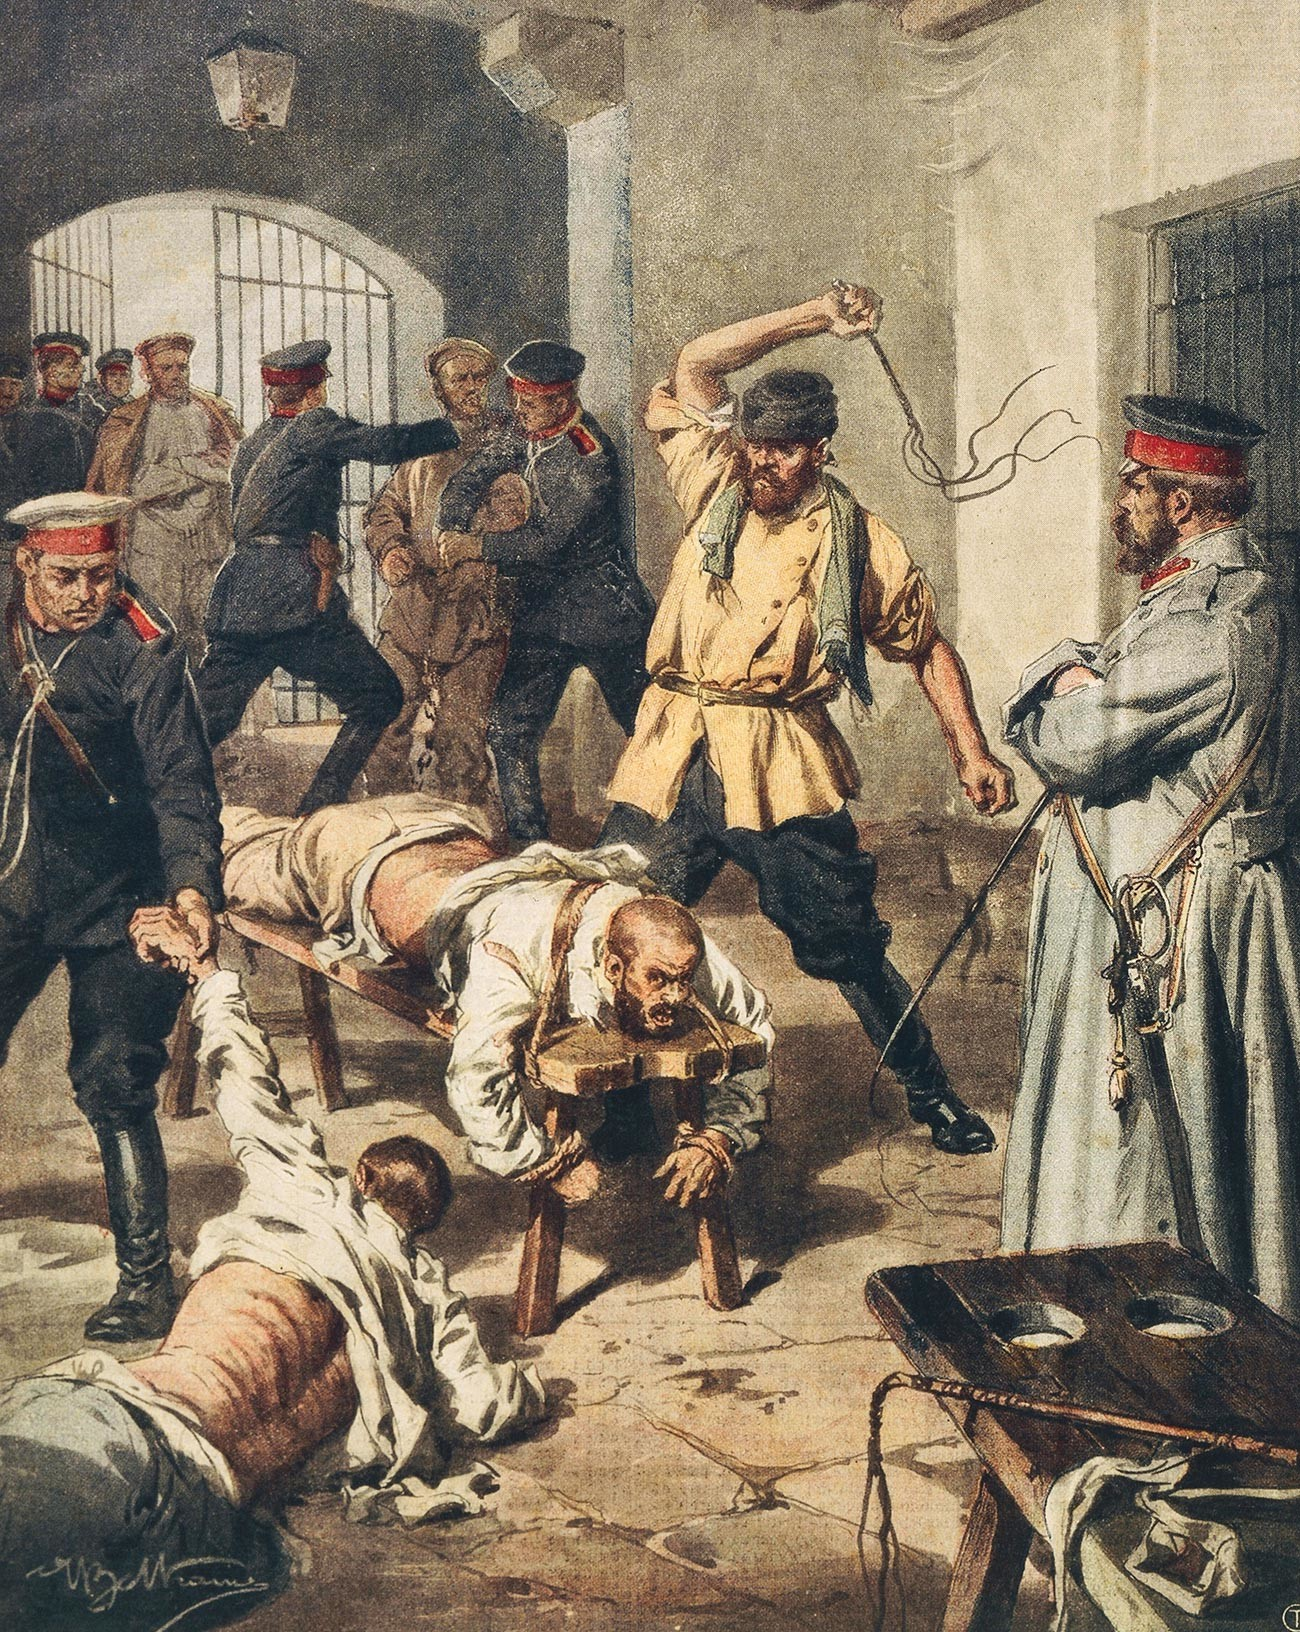 Whipping (from Achille Beltrame, La Domenica del Corriere. The horrors of Russian prisons)